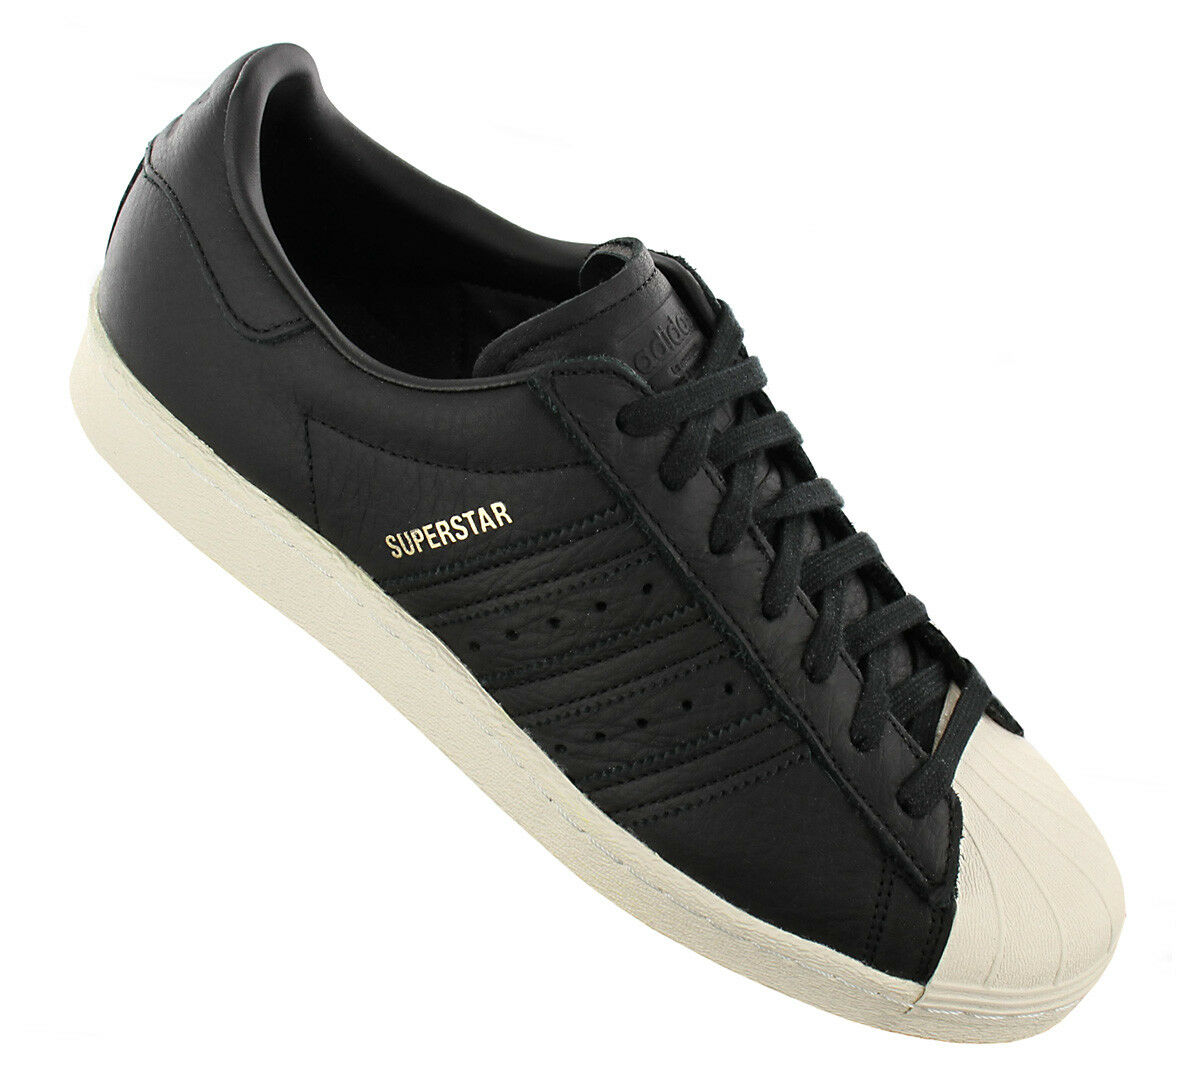 NEW adidas Originals Superstar Leather 80s CQ2656 Men''s shoes Trainers Sneakers